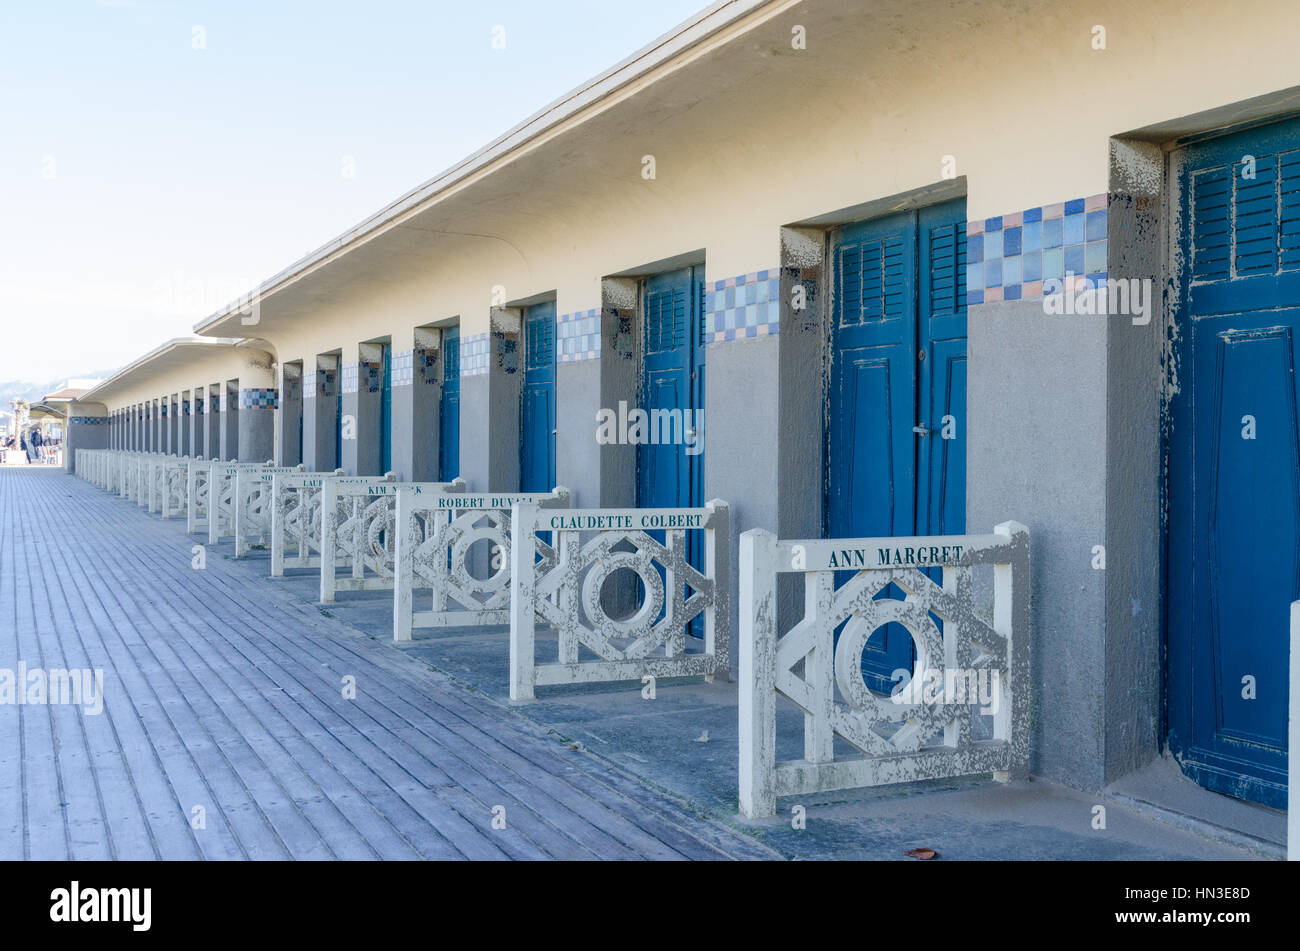 Bathing cabins along Les Planches boardwalk by the beach in the chic french seaside resort of Deauville - Stock Image